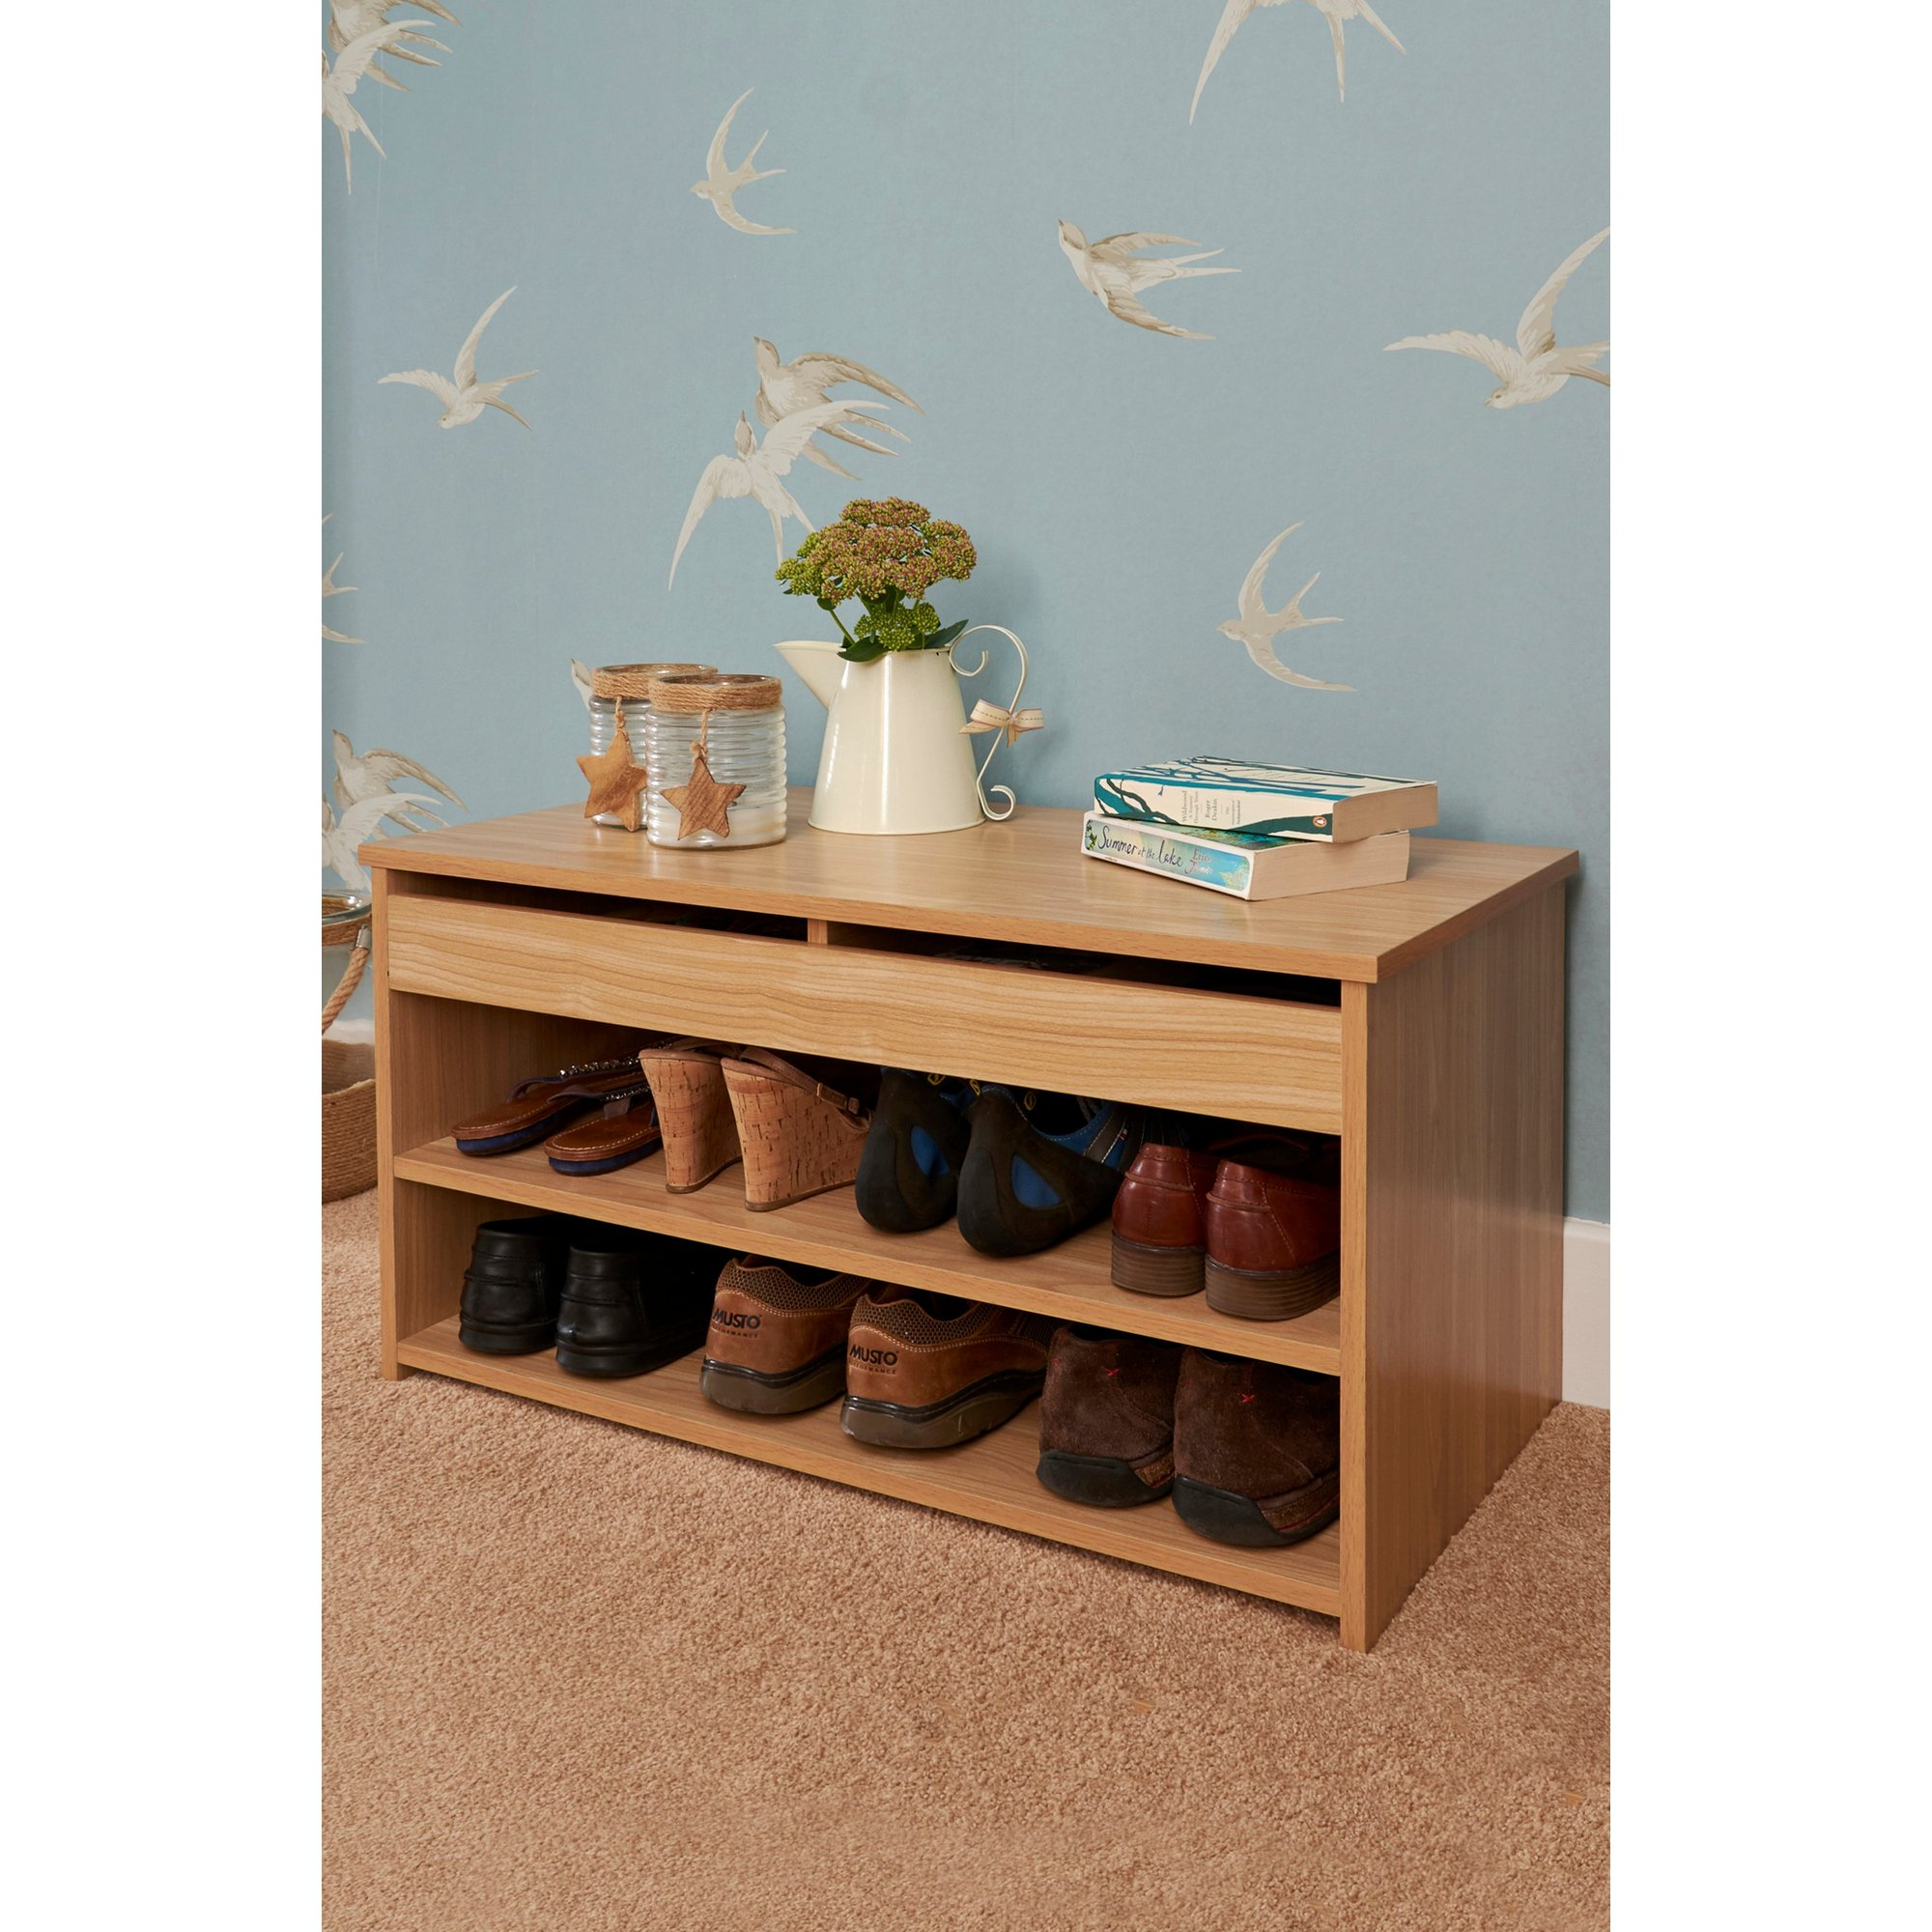 Image of Budget Shoe Cabinet